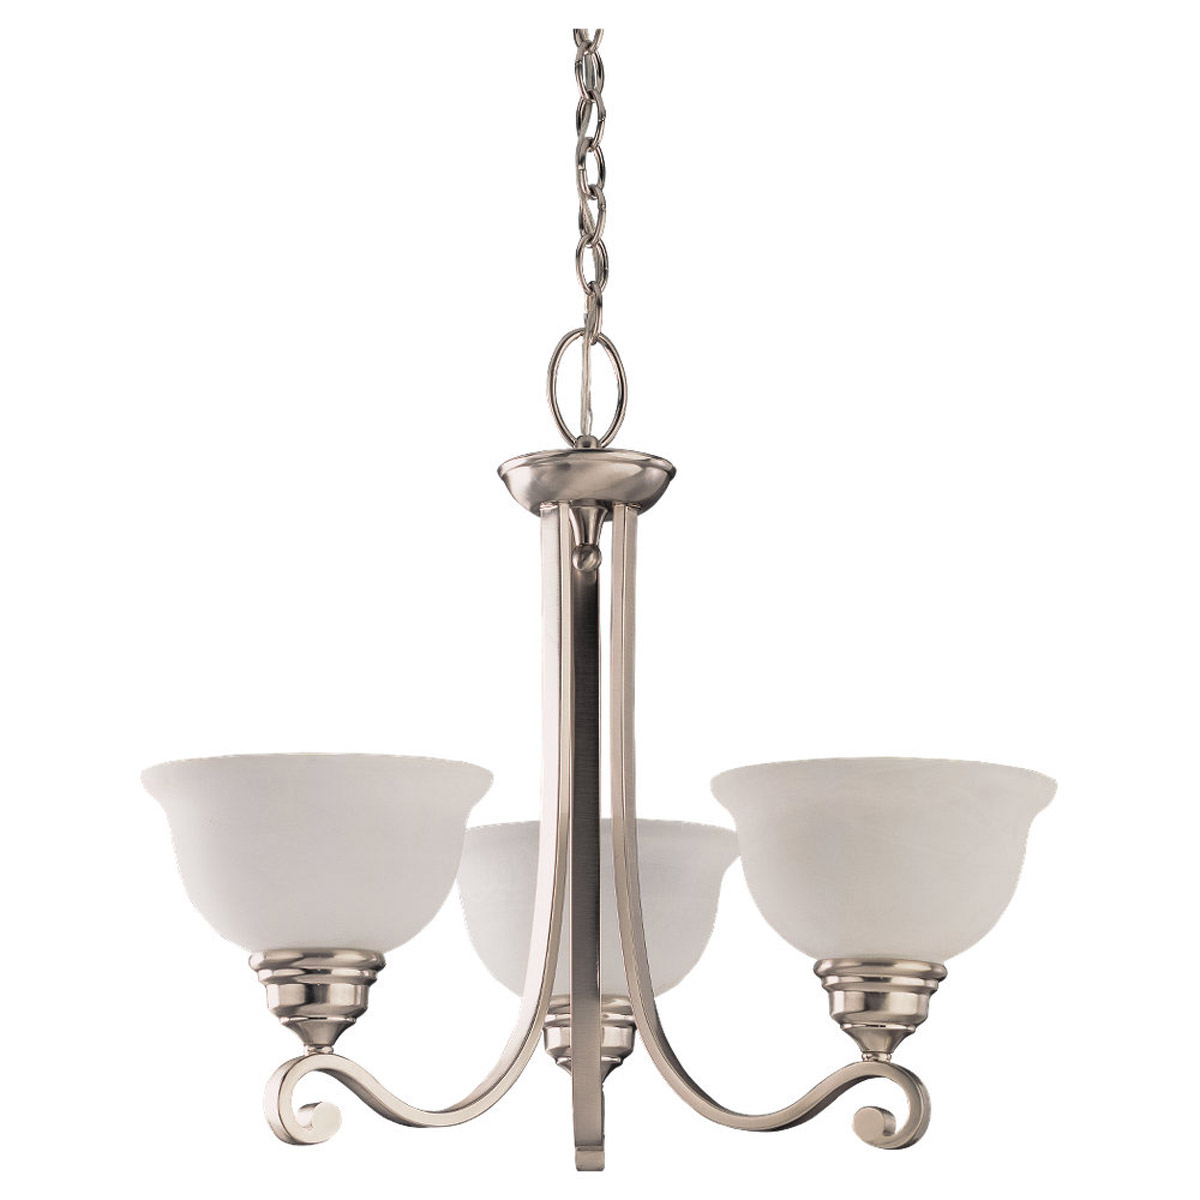 Sea Gull Lighting Serenity 3 Light Chandelier in Brushed Nickel 31190-962